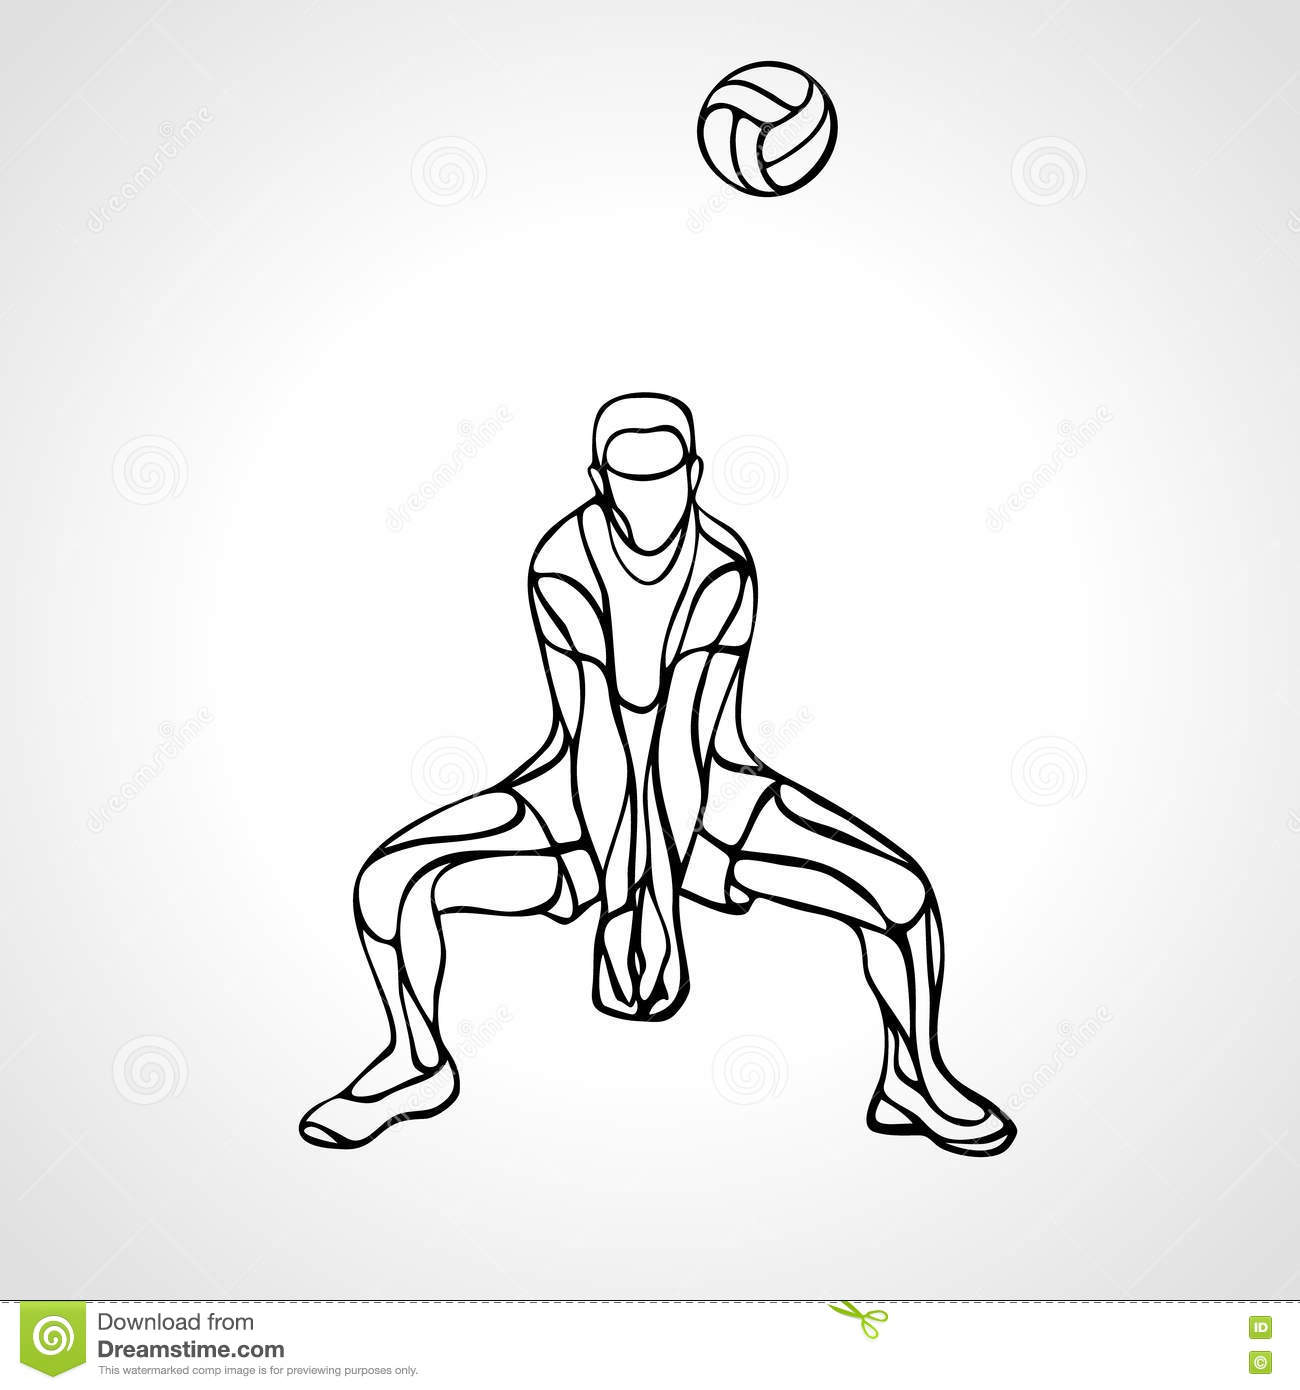 Volleyball Dig Stock Illustrations 207 Volleyball Dig Stock Illustrations Vectors Clipart Dreamstime